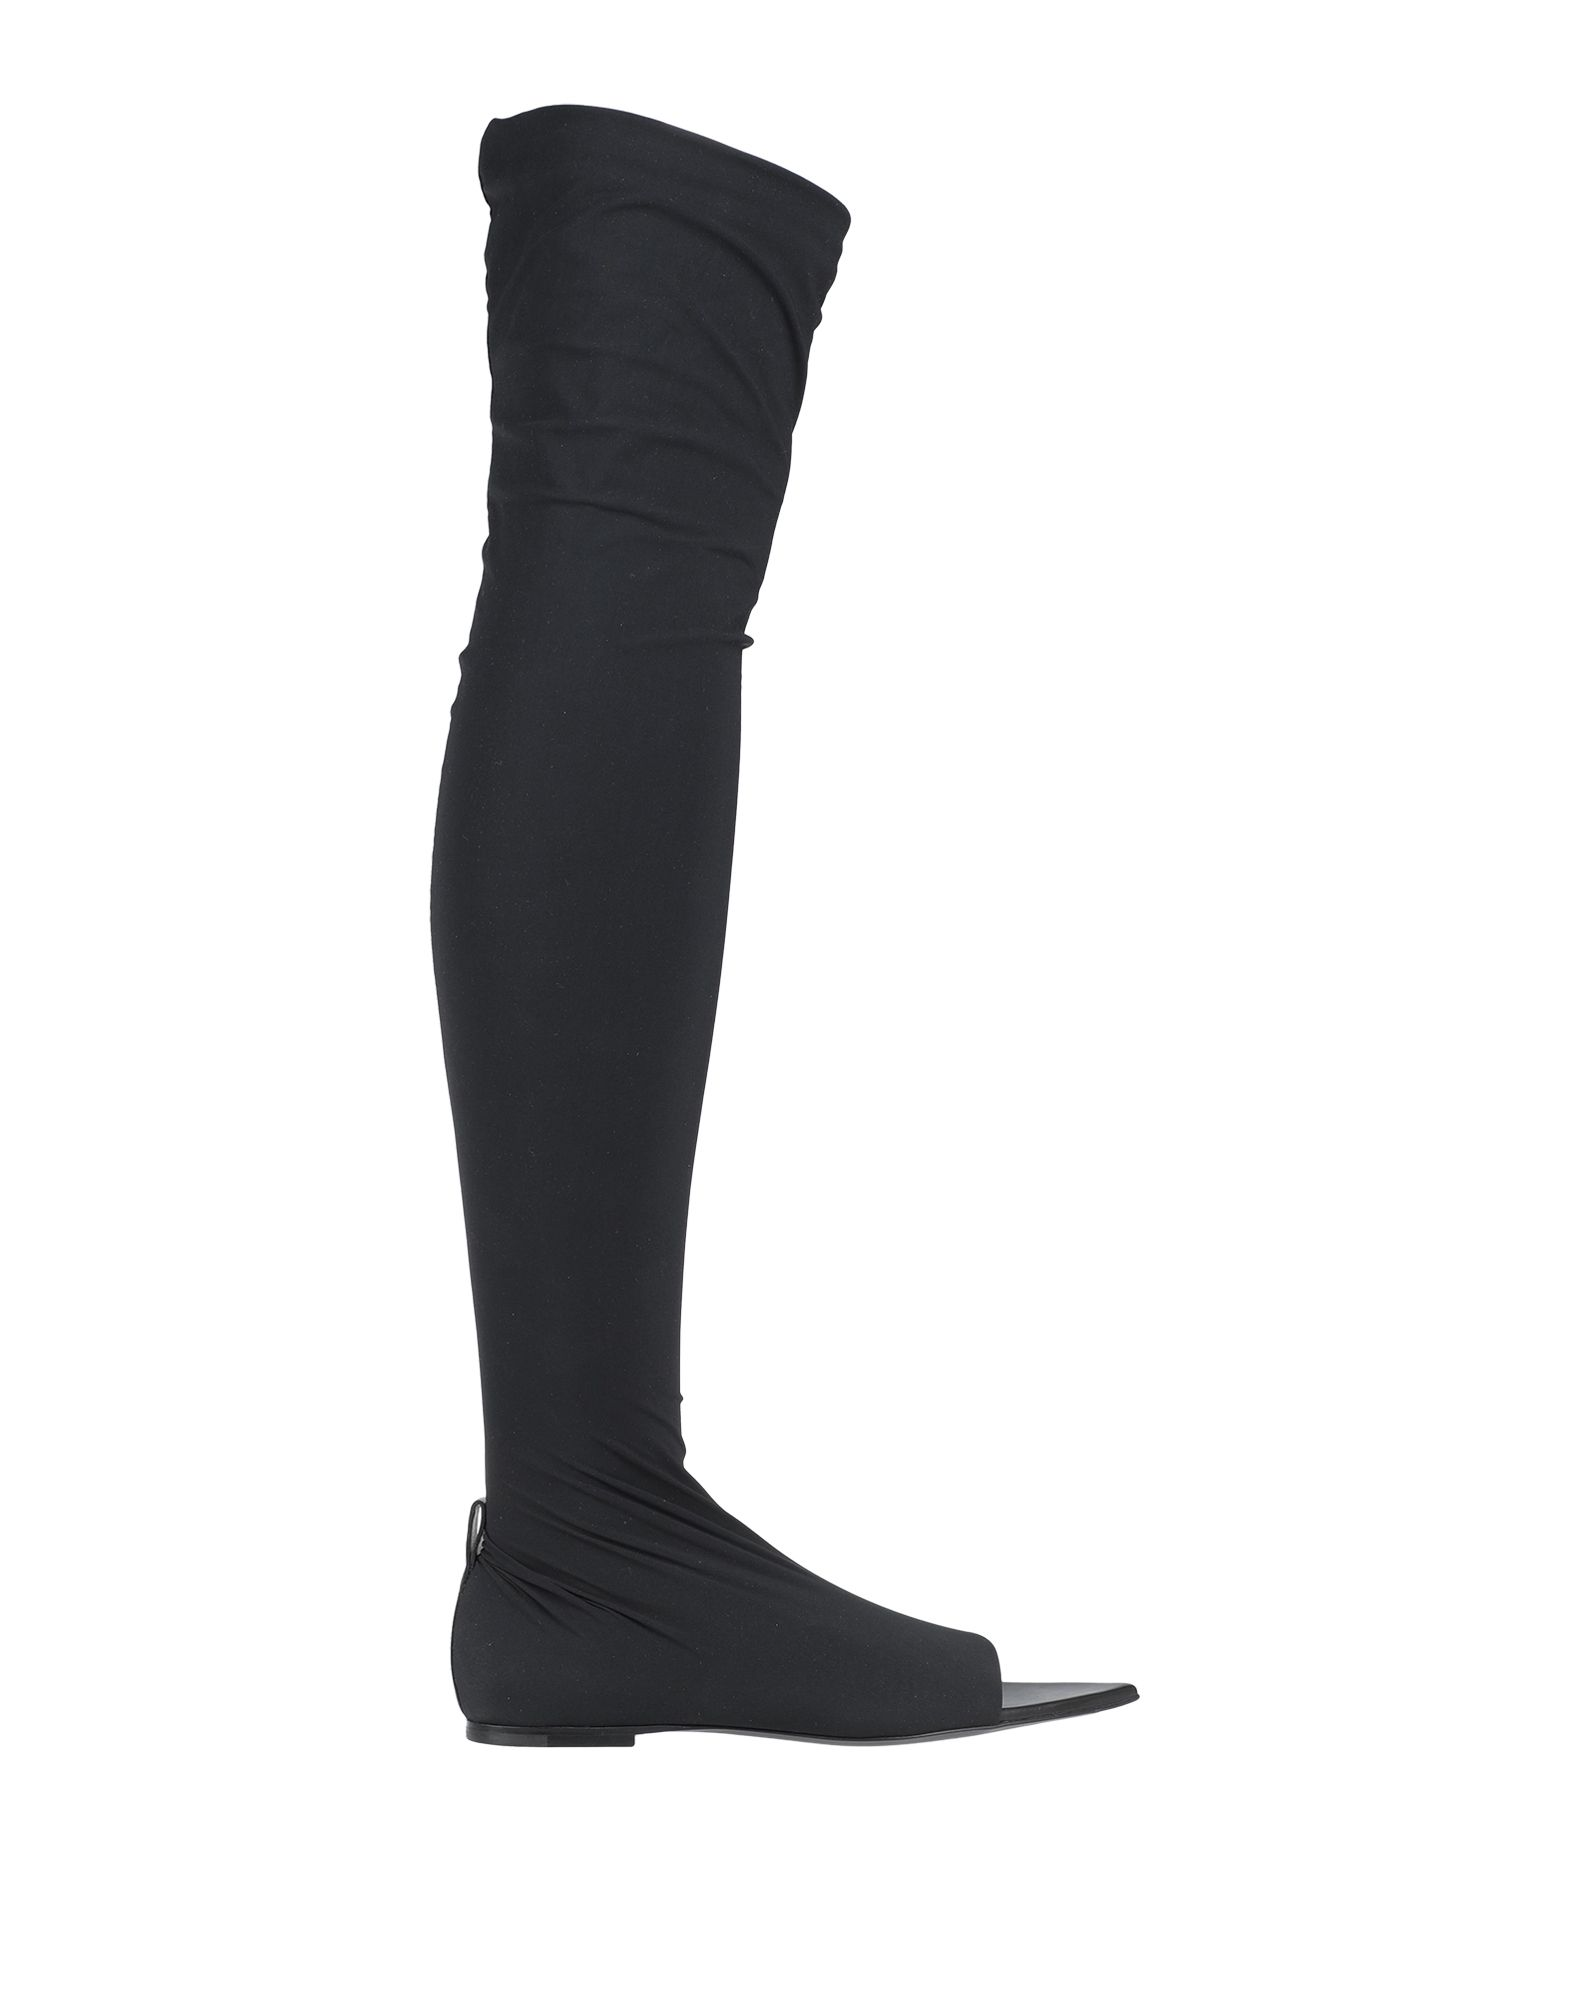 JIL SANDER Boots. synthetic jersey, no appliqués, solid color, narrow toeline, flat, leather lining, leather sole, contains non-textile parts of animal origin. Textile fibers